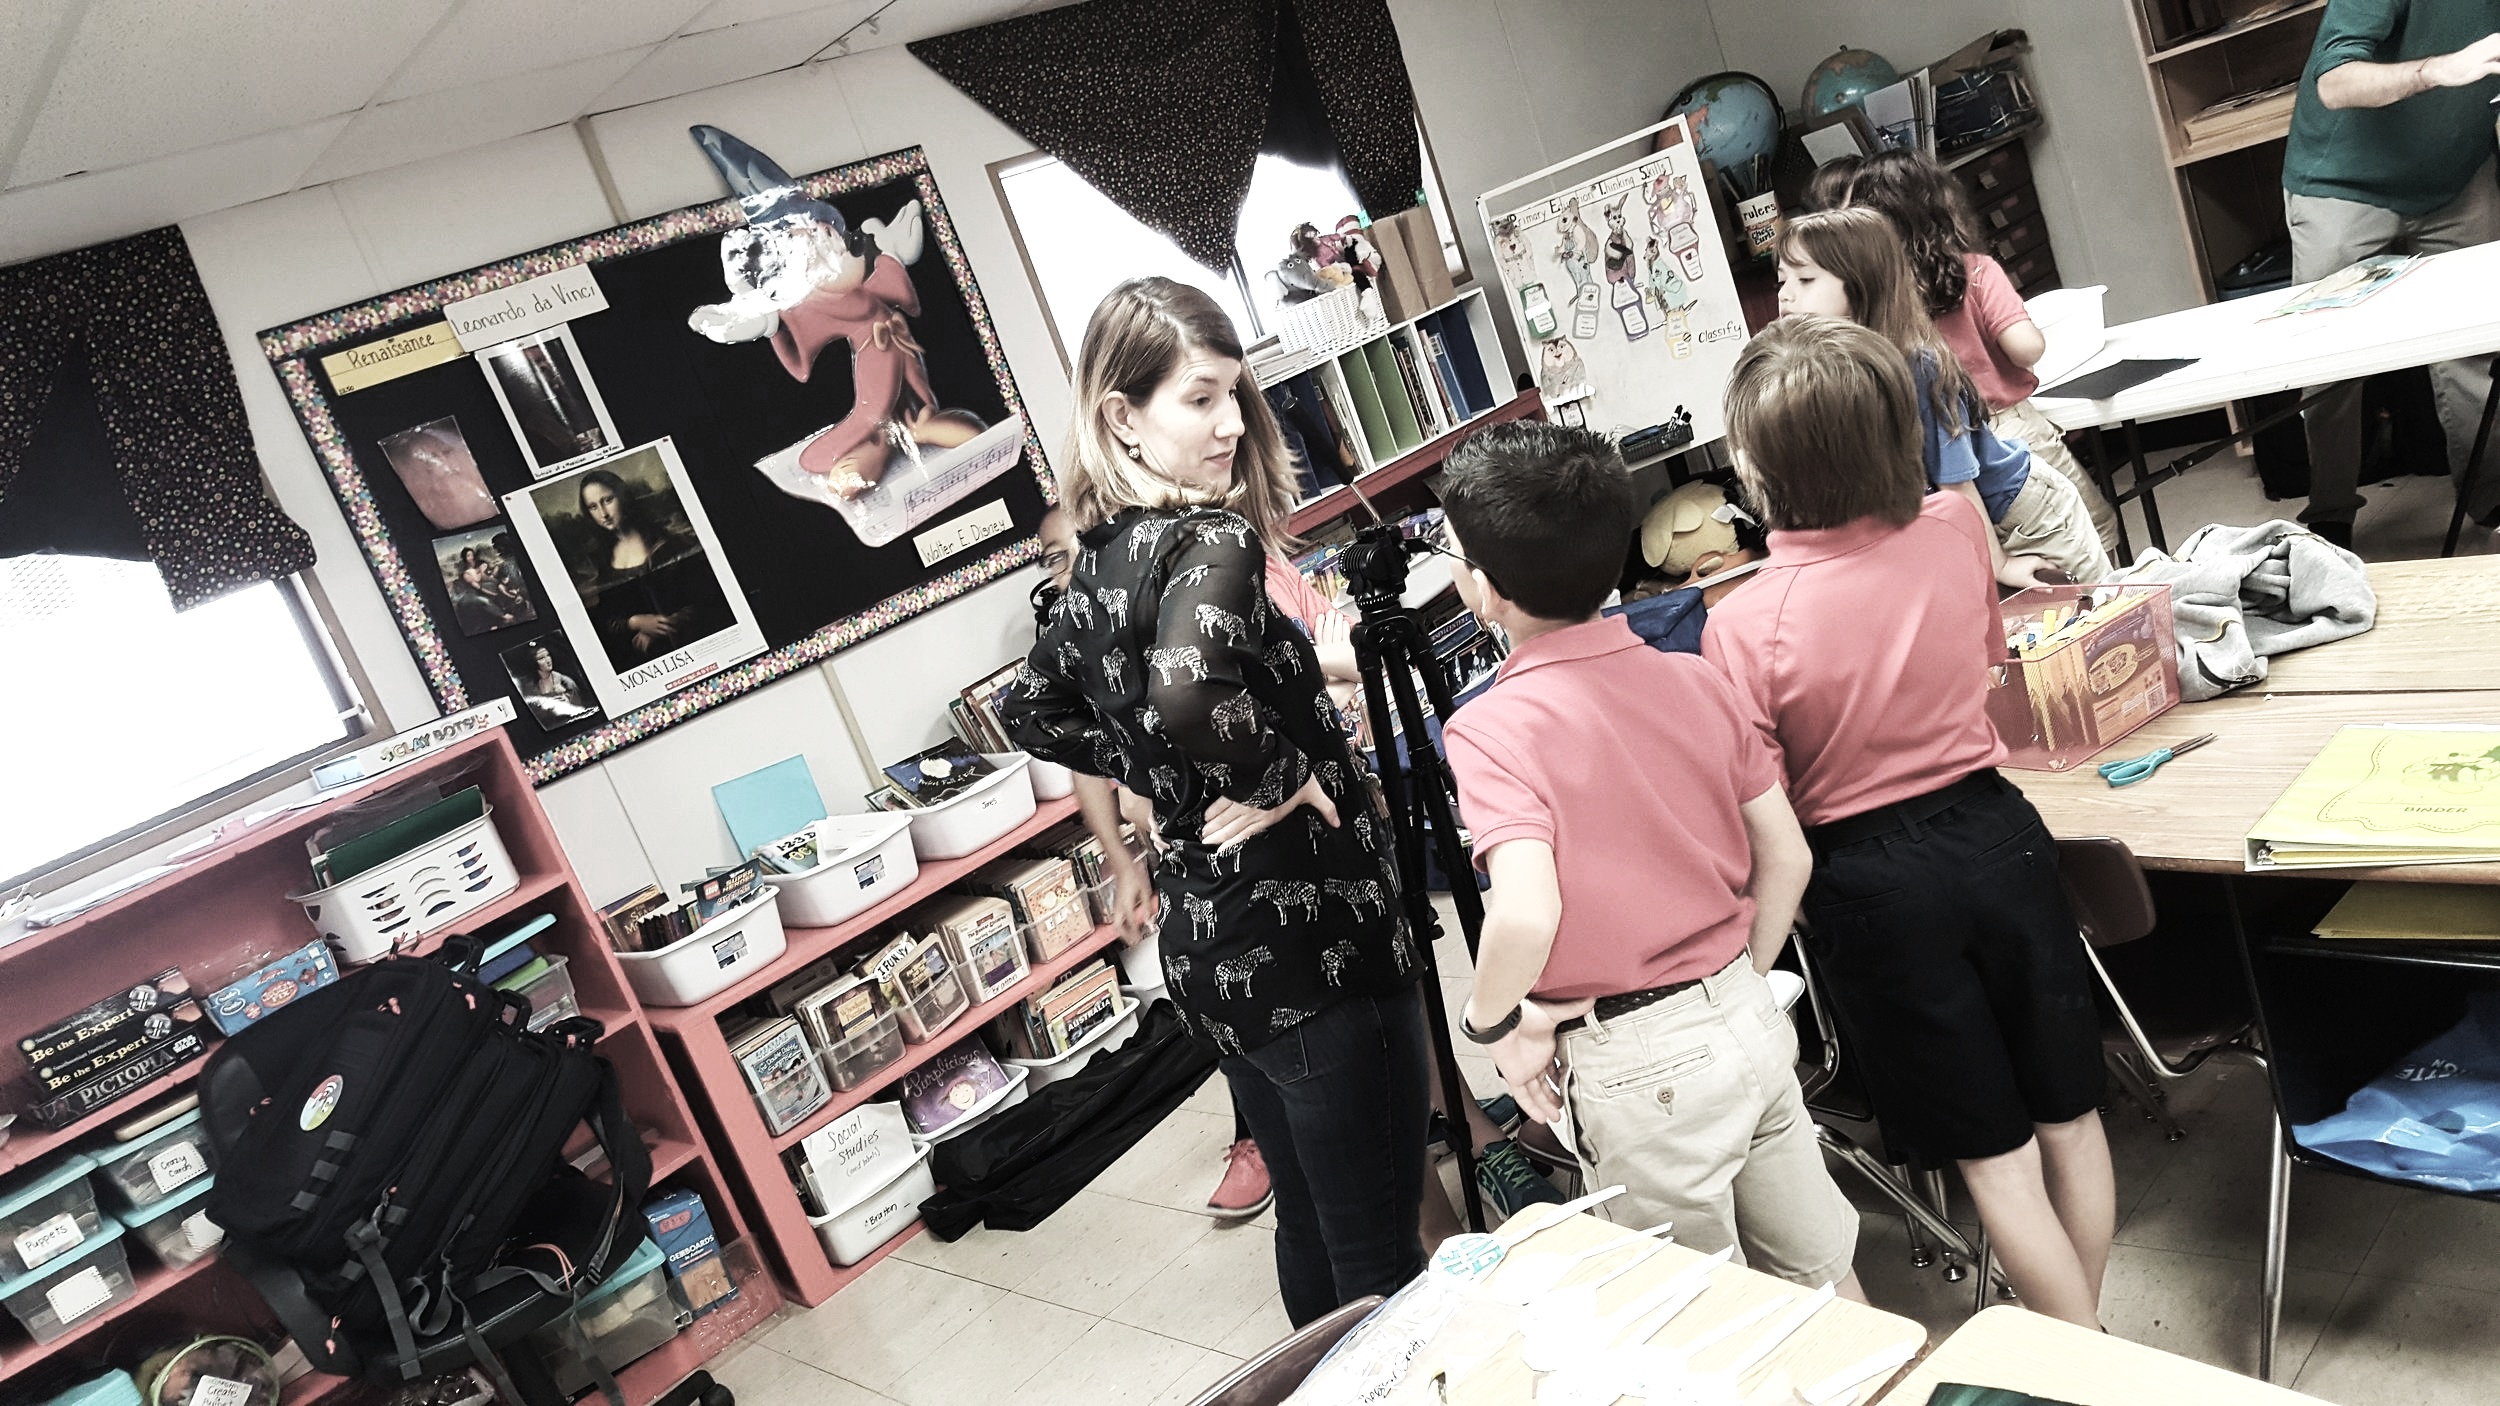 MEDIA LITERACYIn the Classroom - Our Media Literacy Program is a free interactive education program that offers creative, engaging K-12 media literacy presentations to any Lafayette parish educator.